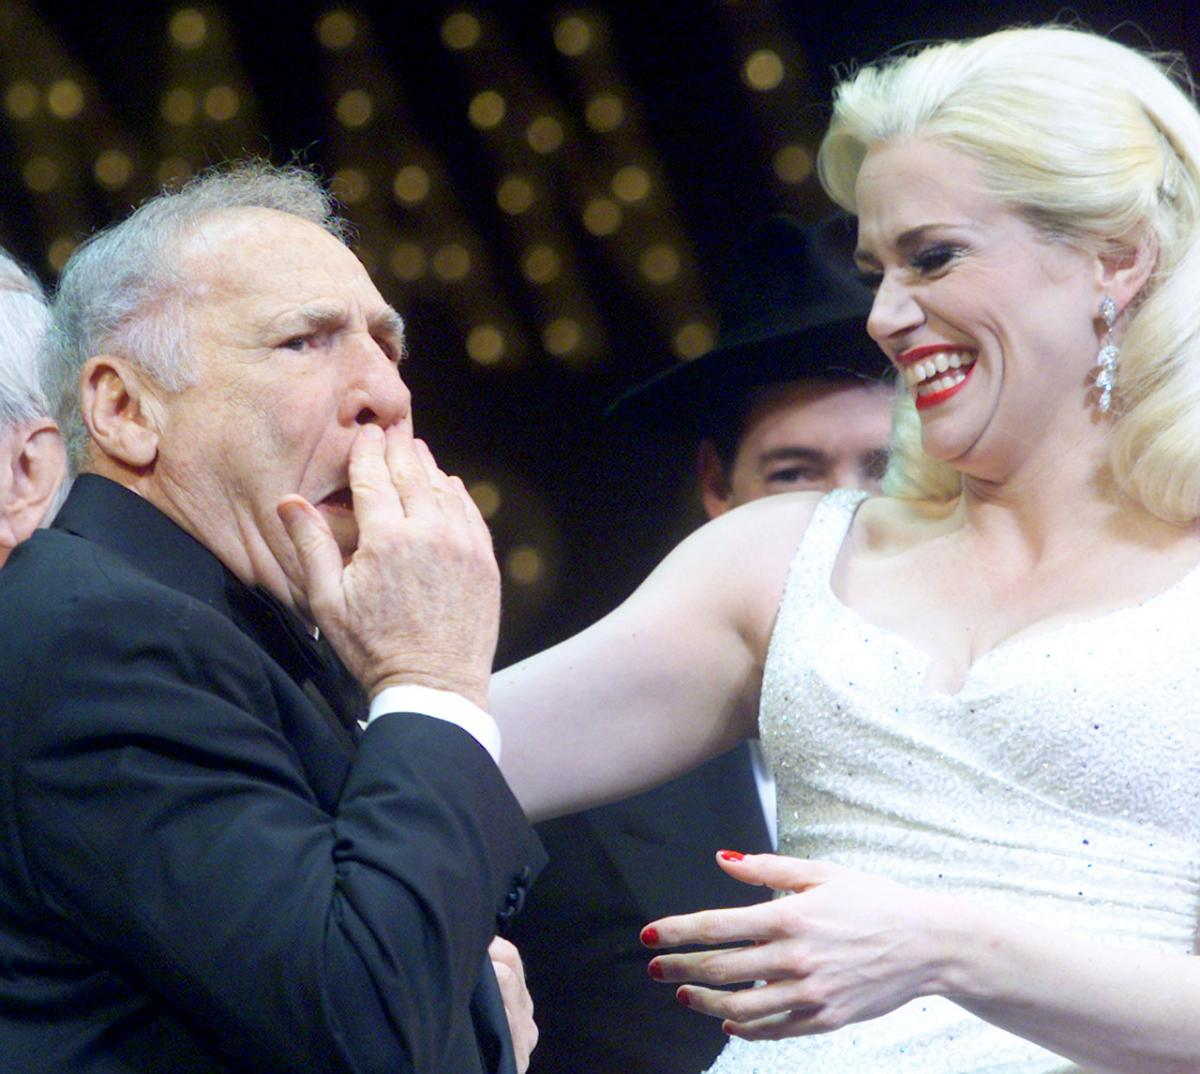 Brooks holds his hand to his face in surprise as a blonde actress in a white dress reaches out to embrace him